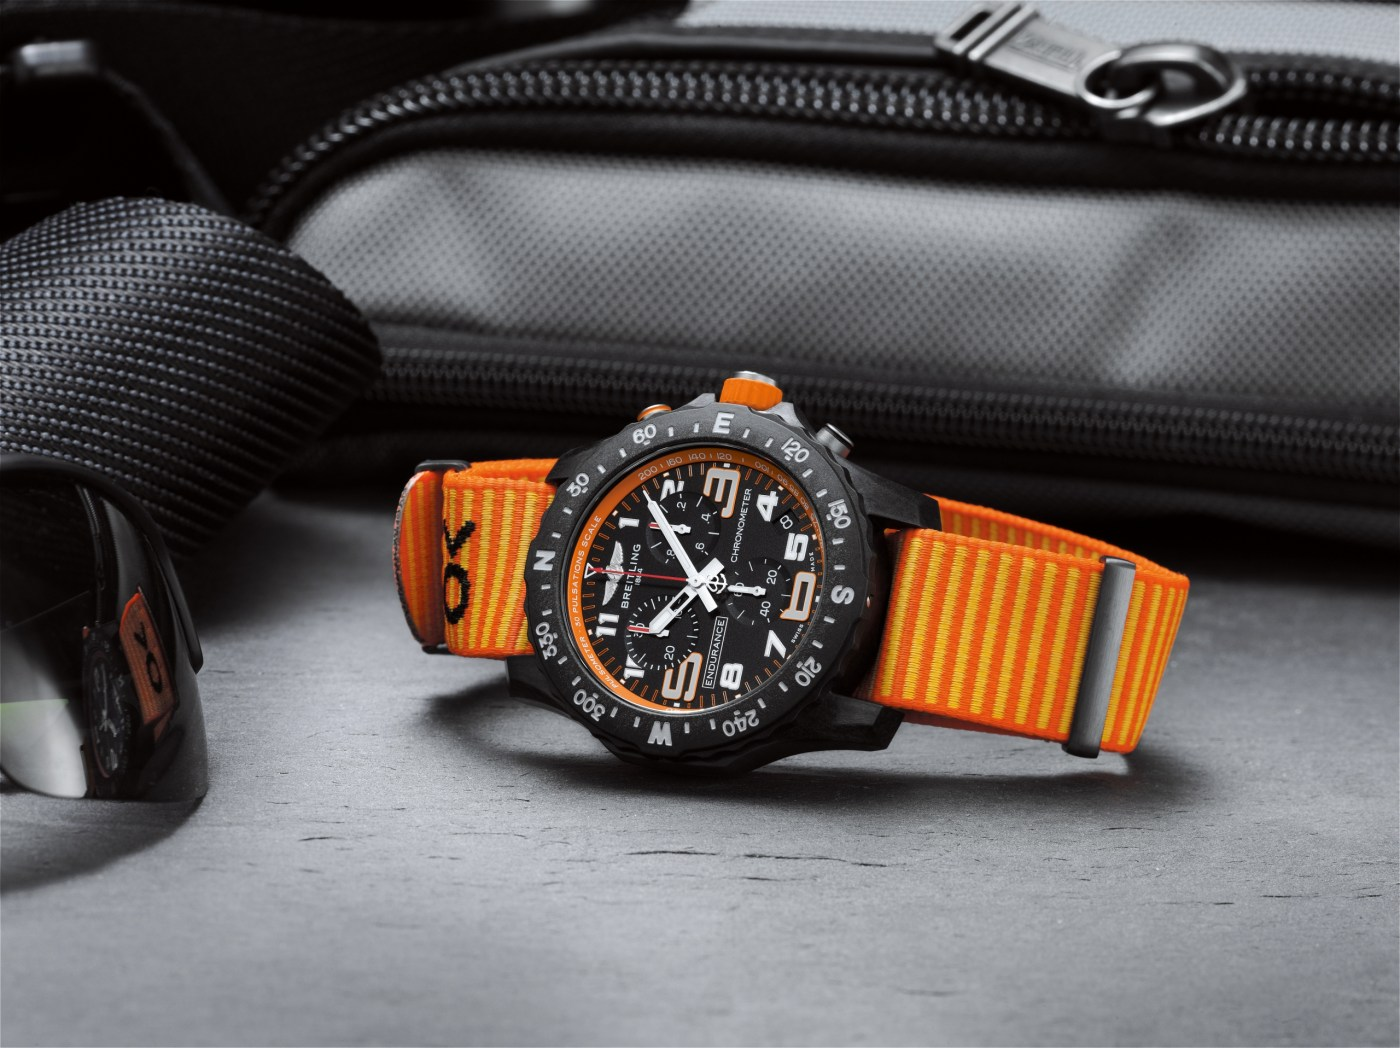 Breitling Endurance Pro Collection